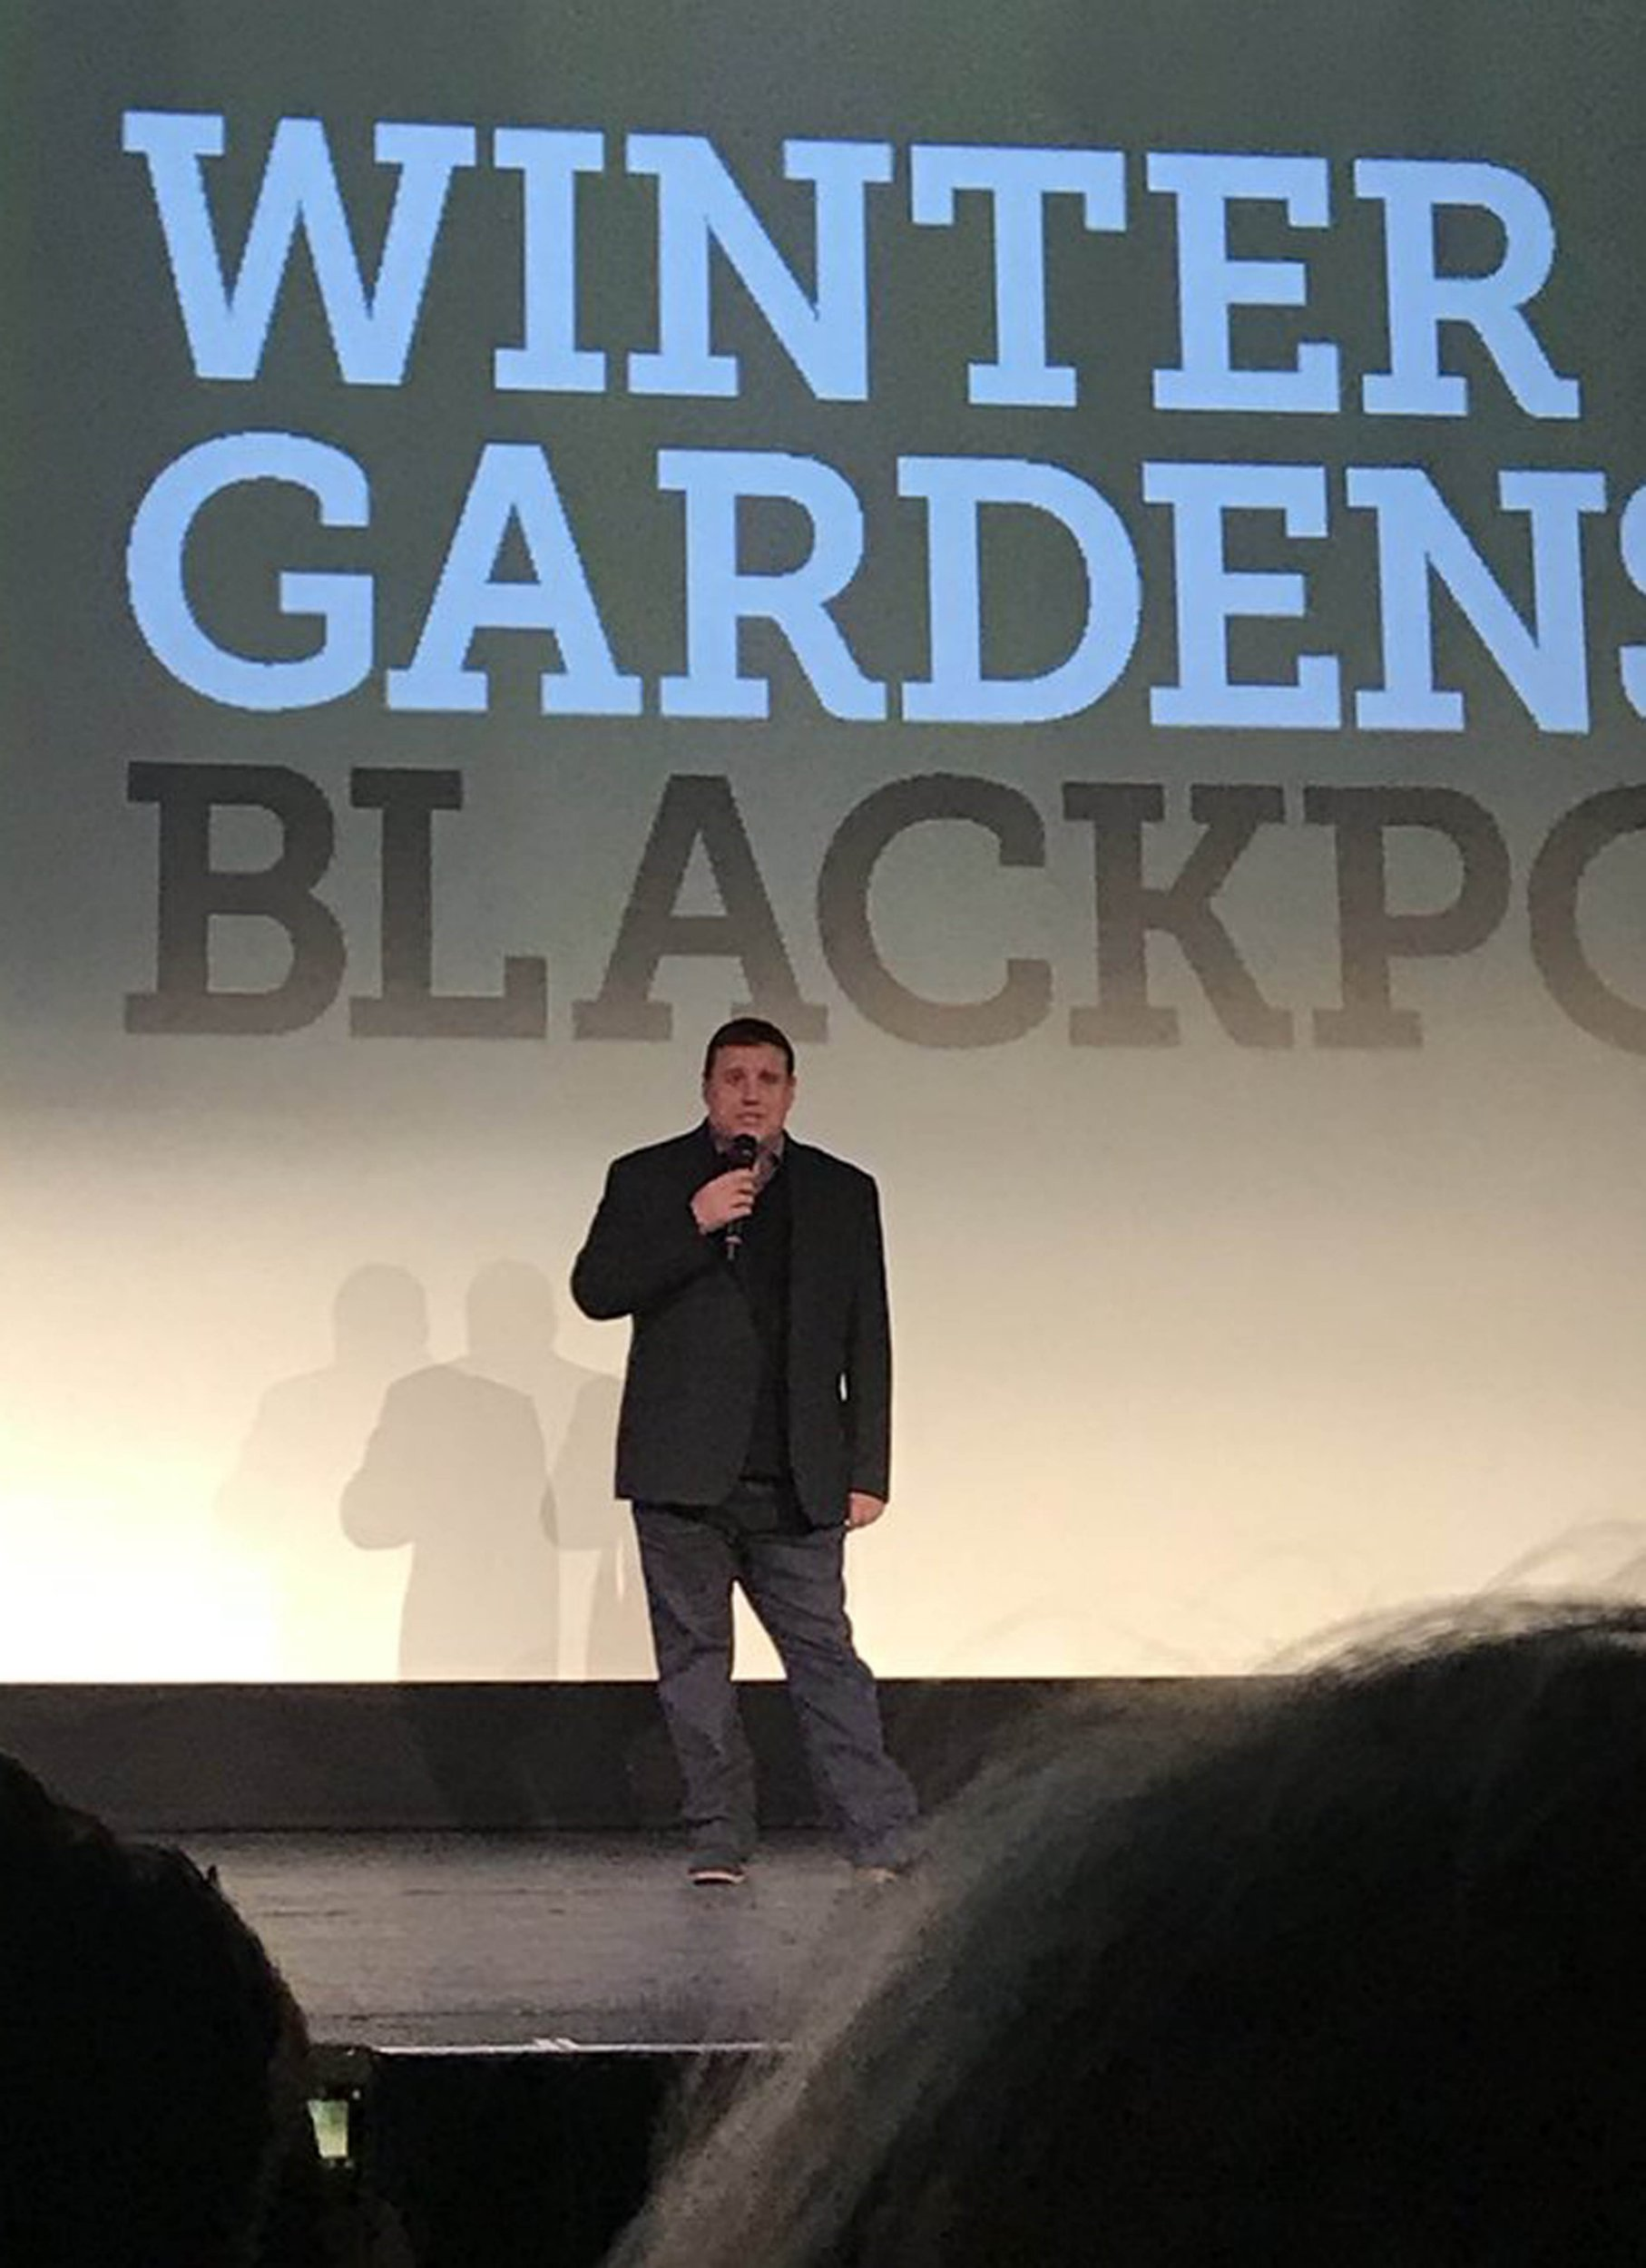 """BEST QUALITY AVAILABLE Picture taken with permission from the twitter feed of @hannahjharrison of comedian Peter Kay addressing the audience at a charity screening of his popular BBC comedy programme at the Blackpool Opera House. PRESS ASSOCIATION Photo. Issue date: Sunday April 8, 2018. The comedian, who cancelled his live tour due to """"unforeseen family circumstances"""" in December, took to the stage at Blackpool Winter Gardens on Saturday evening. See PA story SHOWBIZ Kay. Photo credit should read: @hannahjharrison/Twitter/PA Wire NOTE TO EDITORS: This handout photo may only be used in for editorial reporting purposes for the contemporaneous illustration of events, things or the people in the image or facts mentioned in the caption. Reuse of the picture may require further permission from the copyright holder."""